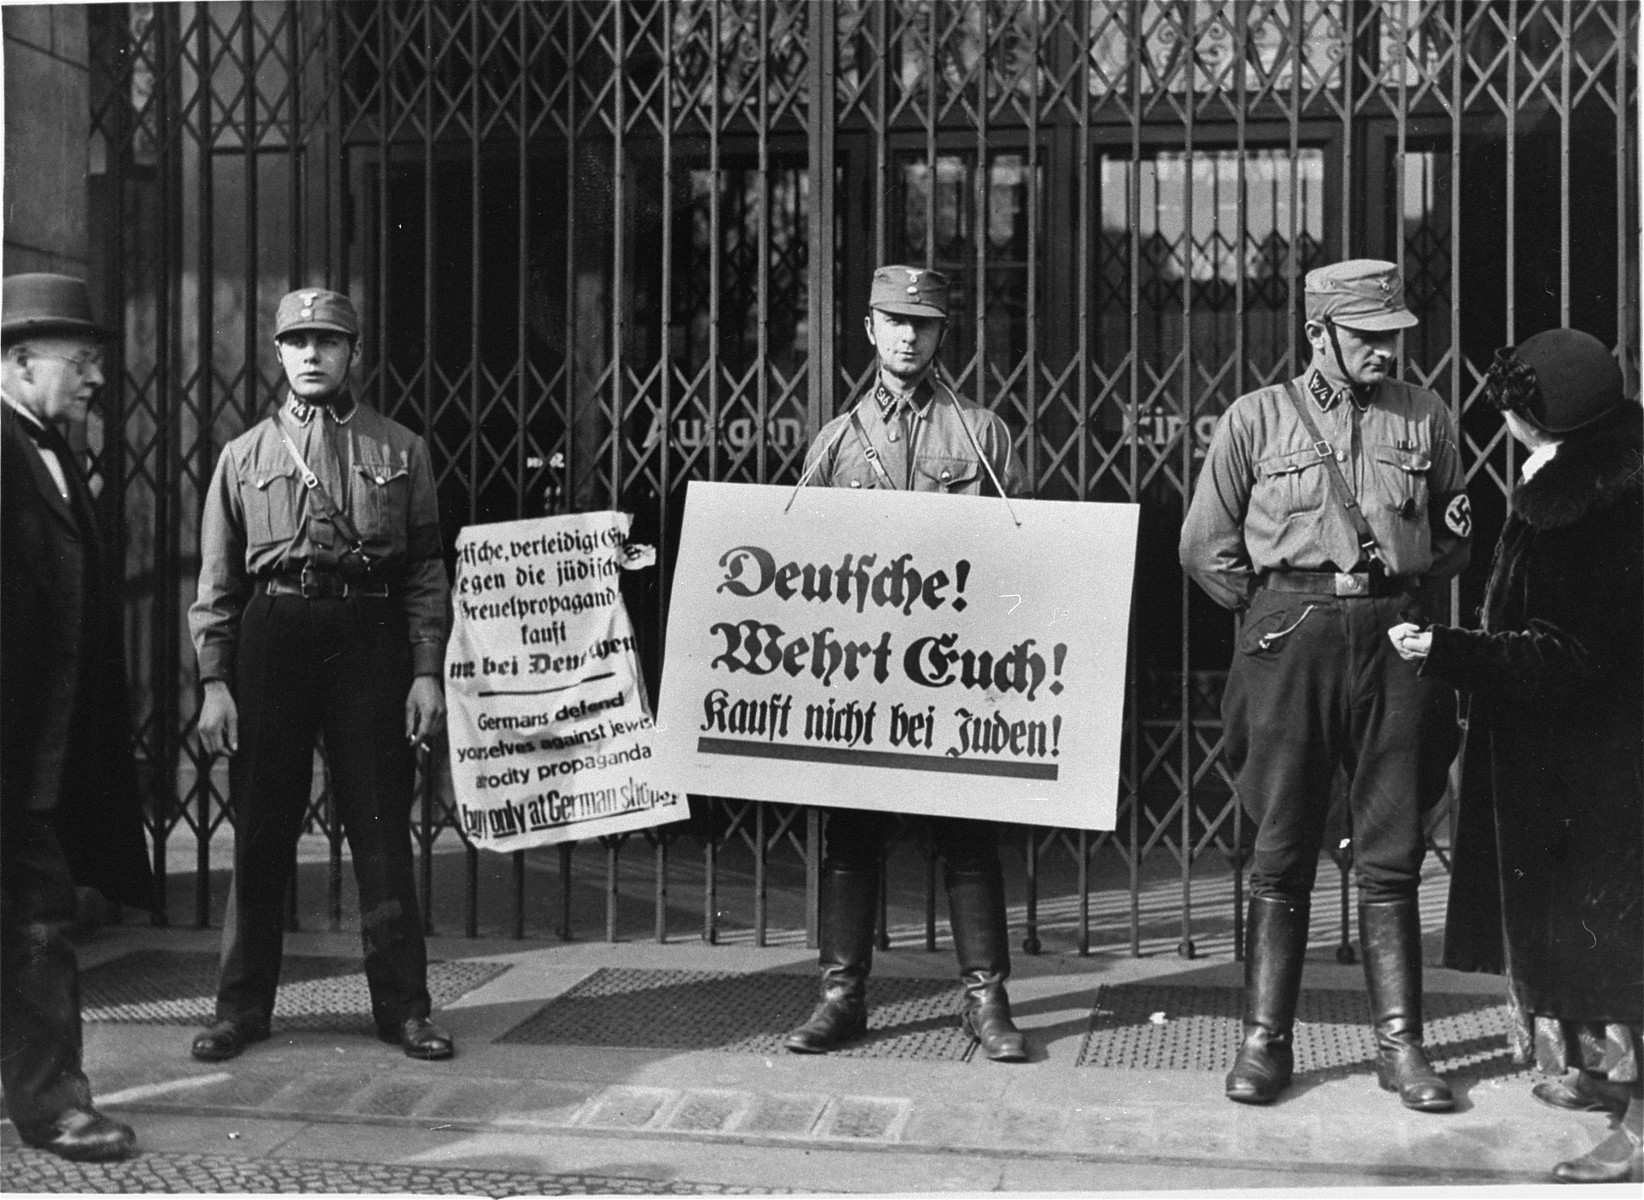 "SA pickets, wearing boycott signs, block the entrance to a Jewish-owned shop.    The signs read:  ""Germans, defend yourselves against the Jewish atrocity propaganda, buy only at German shops!"" and ""Germans, defend yourselves, buy only at German shops!"""